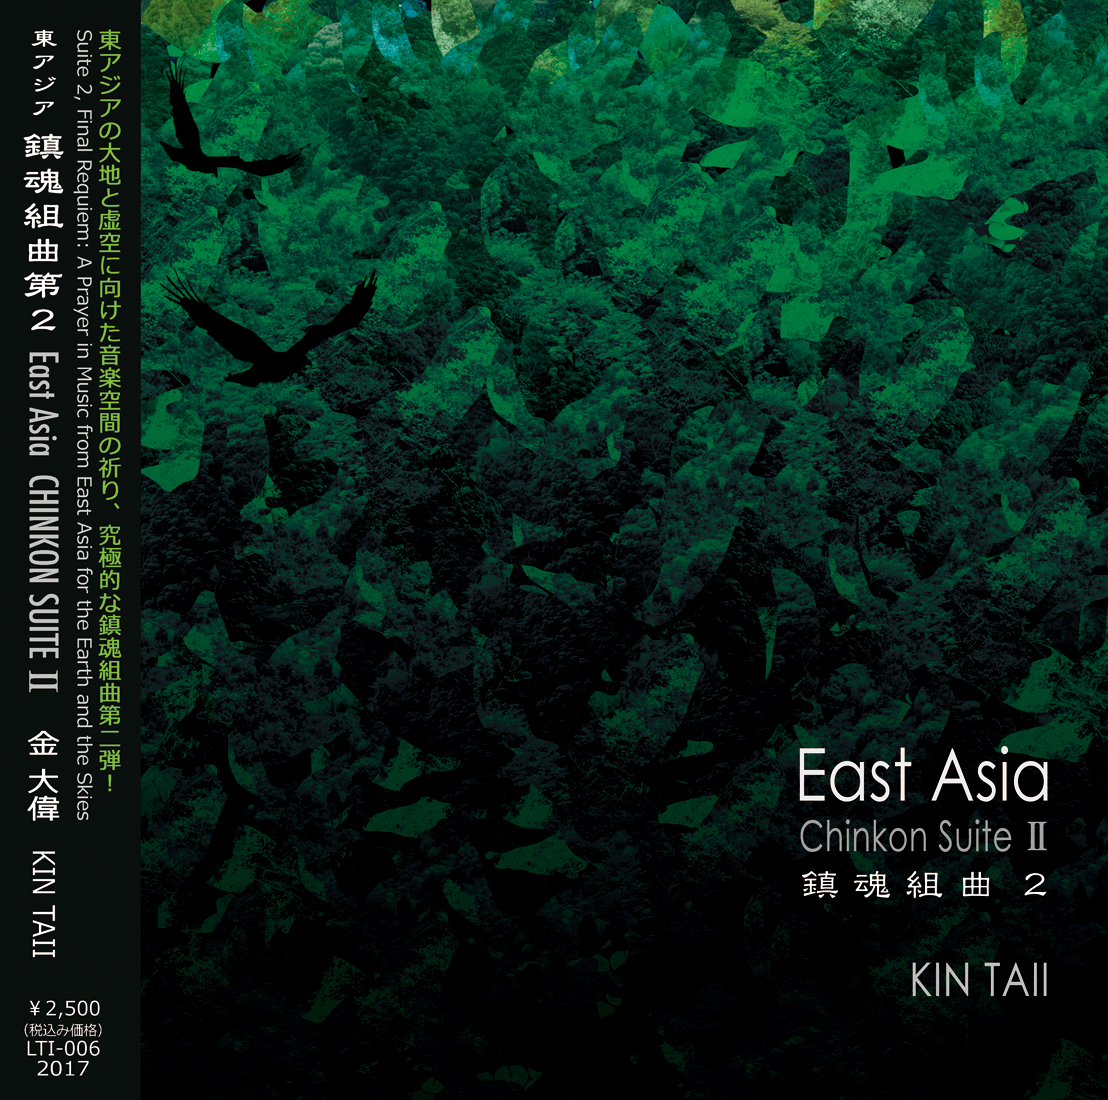 CD発売! East Asia Chinkon Suite Ⅱ